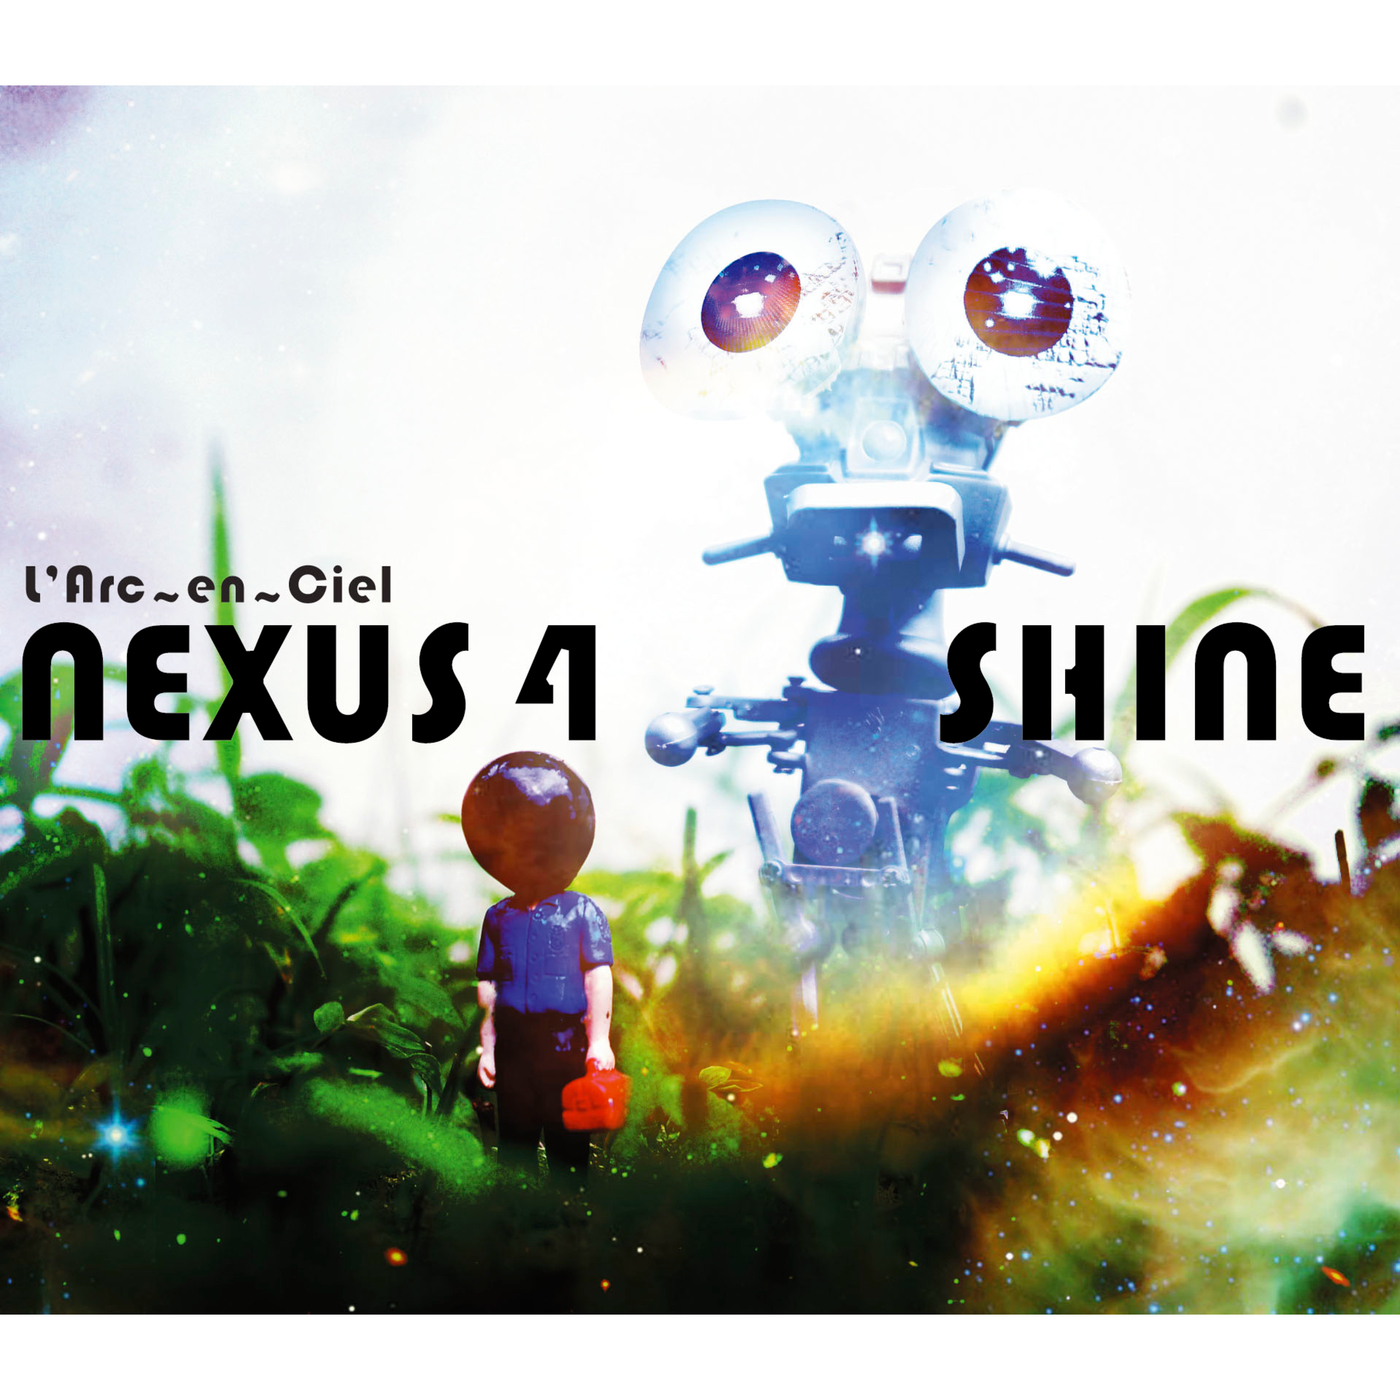 NEXUS 4 / SHINE - L'Arc-en-Ciel